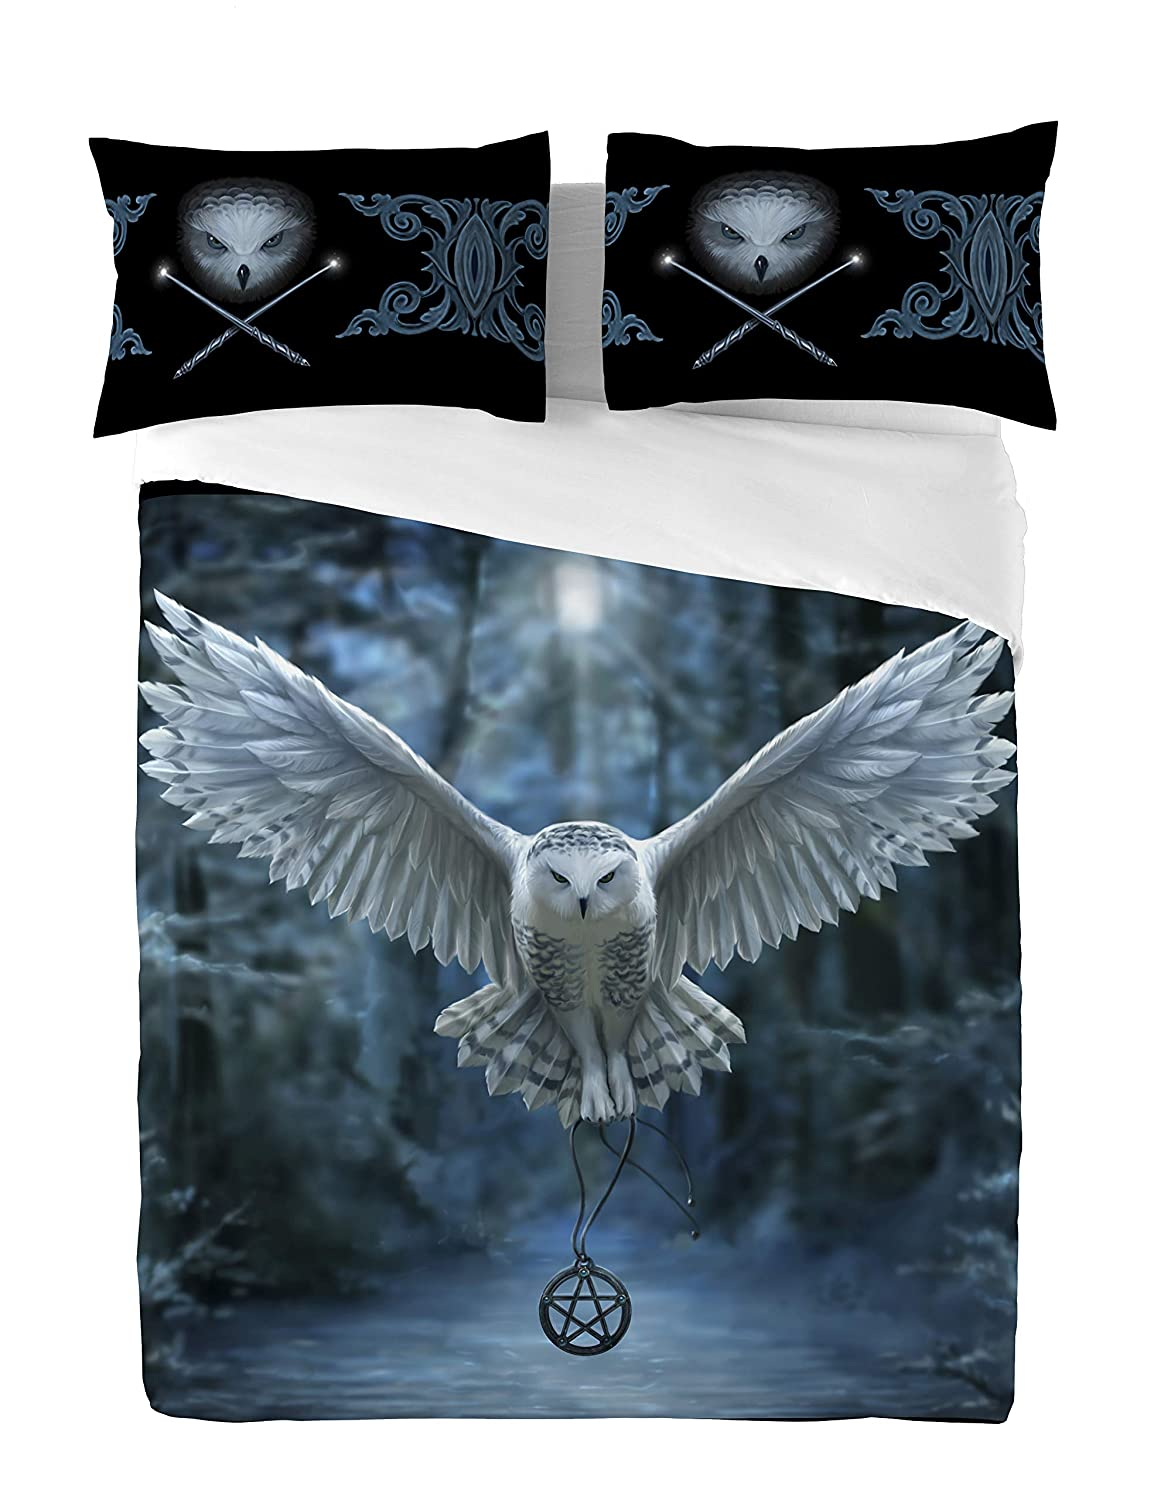 AWAKEN YOUR MAGIC Duvet & Pillows Case Covers Set for Double Twin Bed Artwork By Anne Stokes by Wild Star@Home